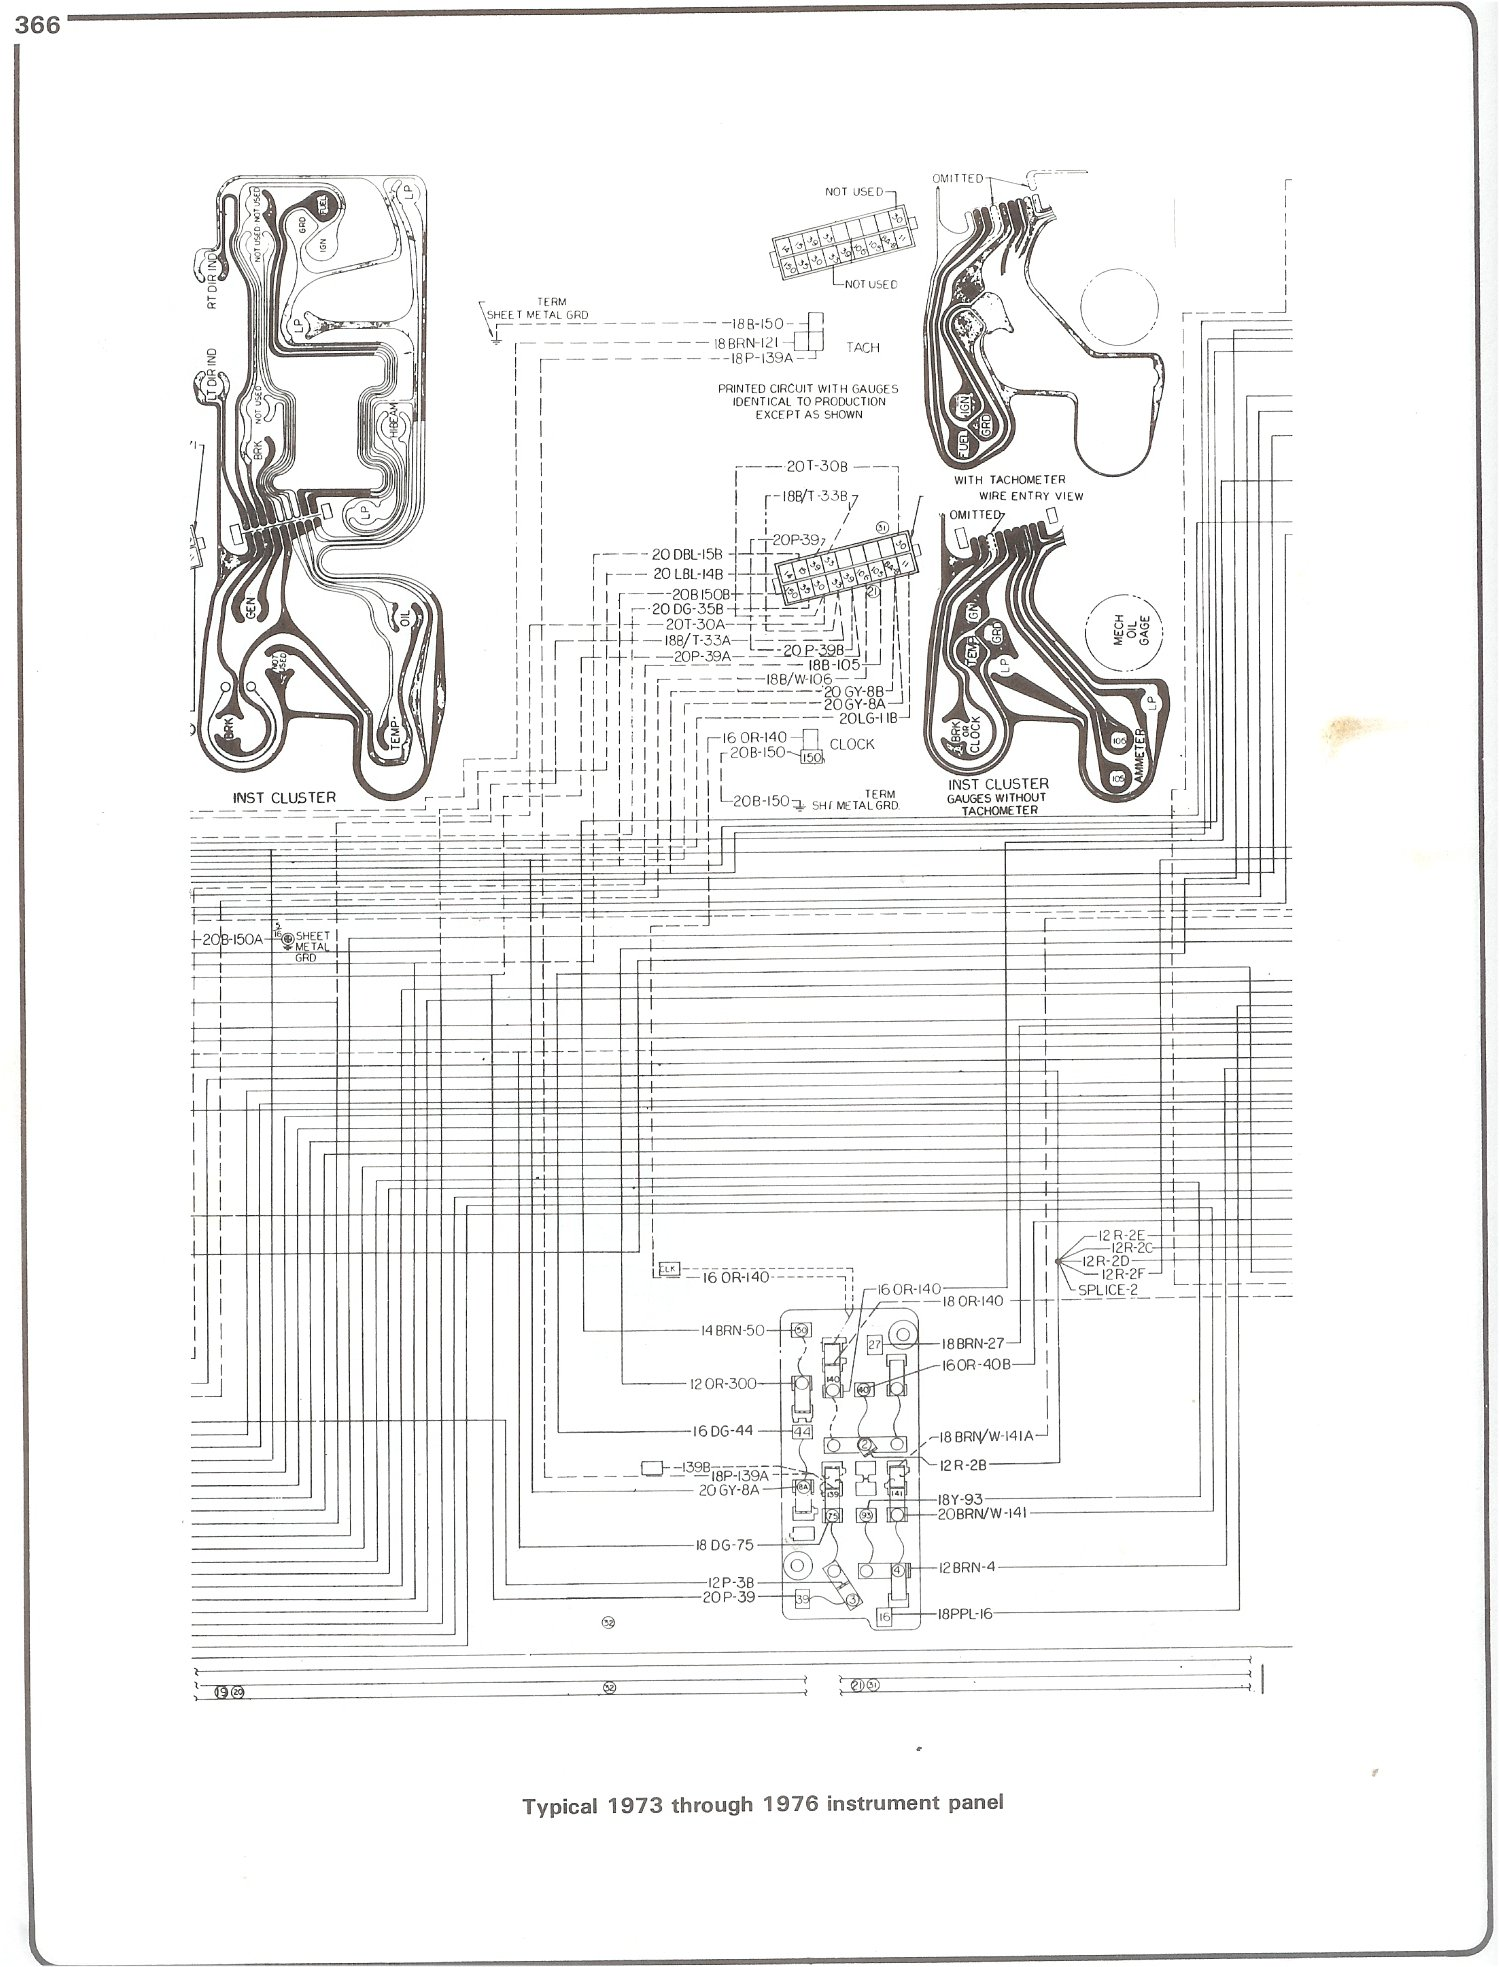 complete 73 87 wiring diagrams rh forum 73 87chevytrucks com 1985 chevy truck ignition wiring diagram 1985 chevy silverado wiring diagram